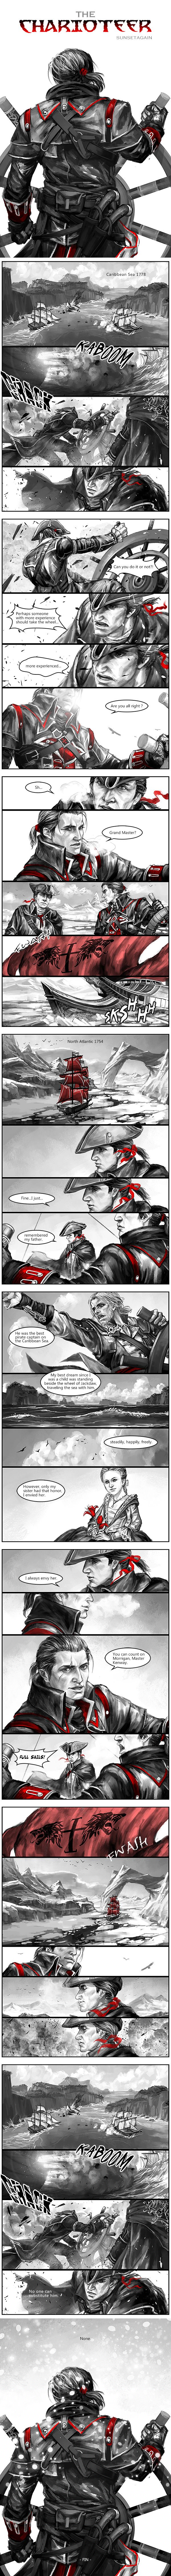 【Headcanon】Shipwreck of Morrigan Dialogue modified from the movie TITANICJoin the Templar, Master Kenway, was the best thing that ever happened to me… it brought me to you. And ...